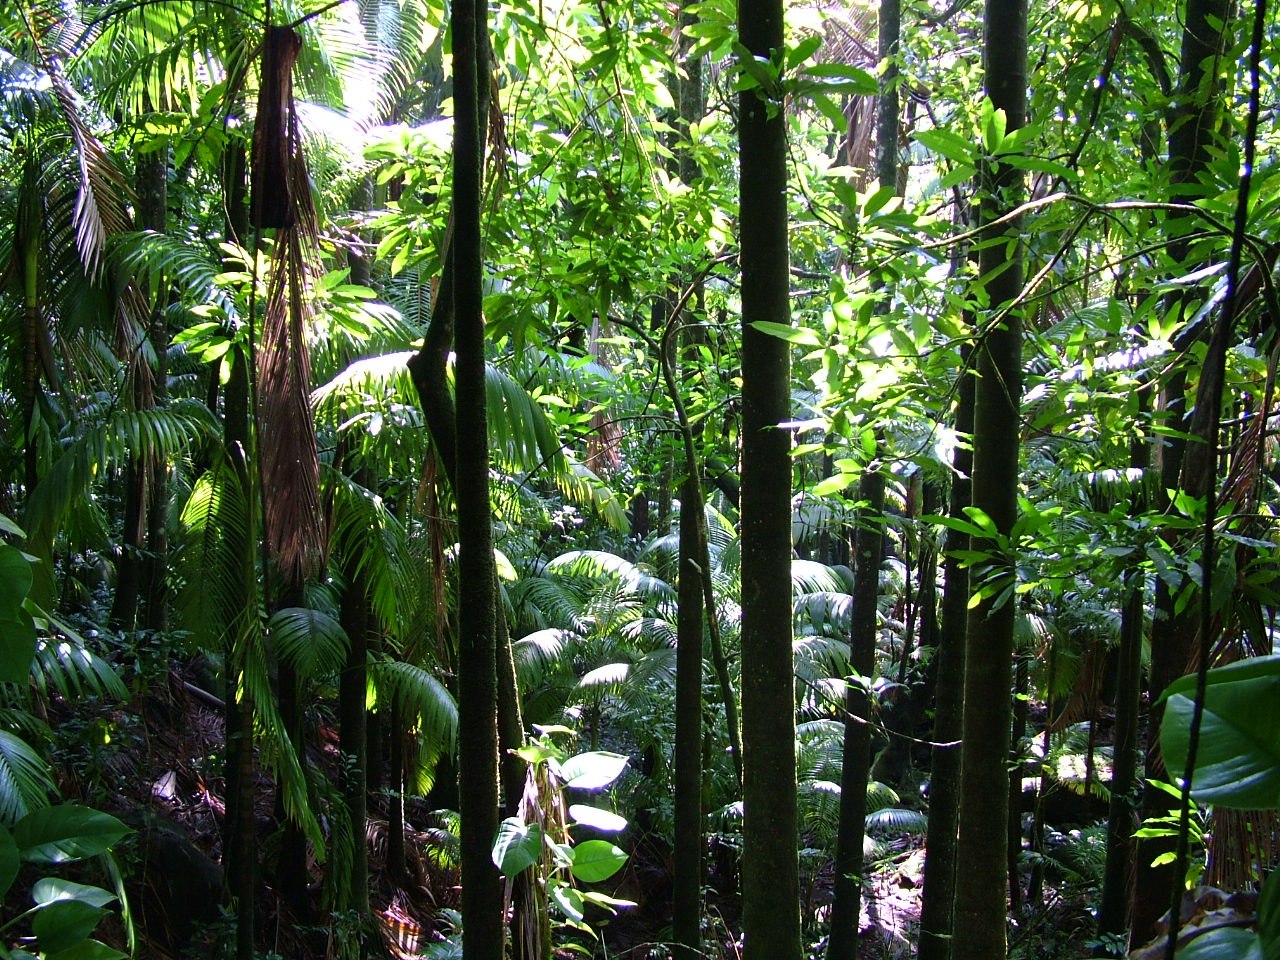 an examination of rainforests Forests by almost five percent (an estimated 3000 cubic kilo- meters [km 3 ] per year of a global terrestrial derived total of 67,000 km 3 ), with little sign of slowing (gordon et al 2005).